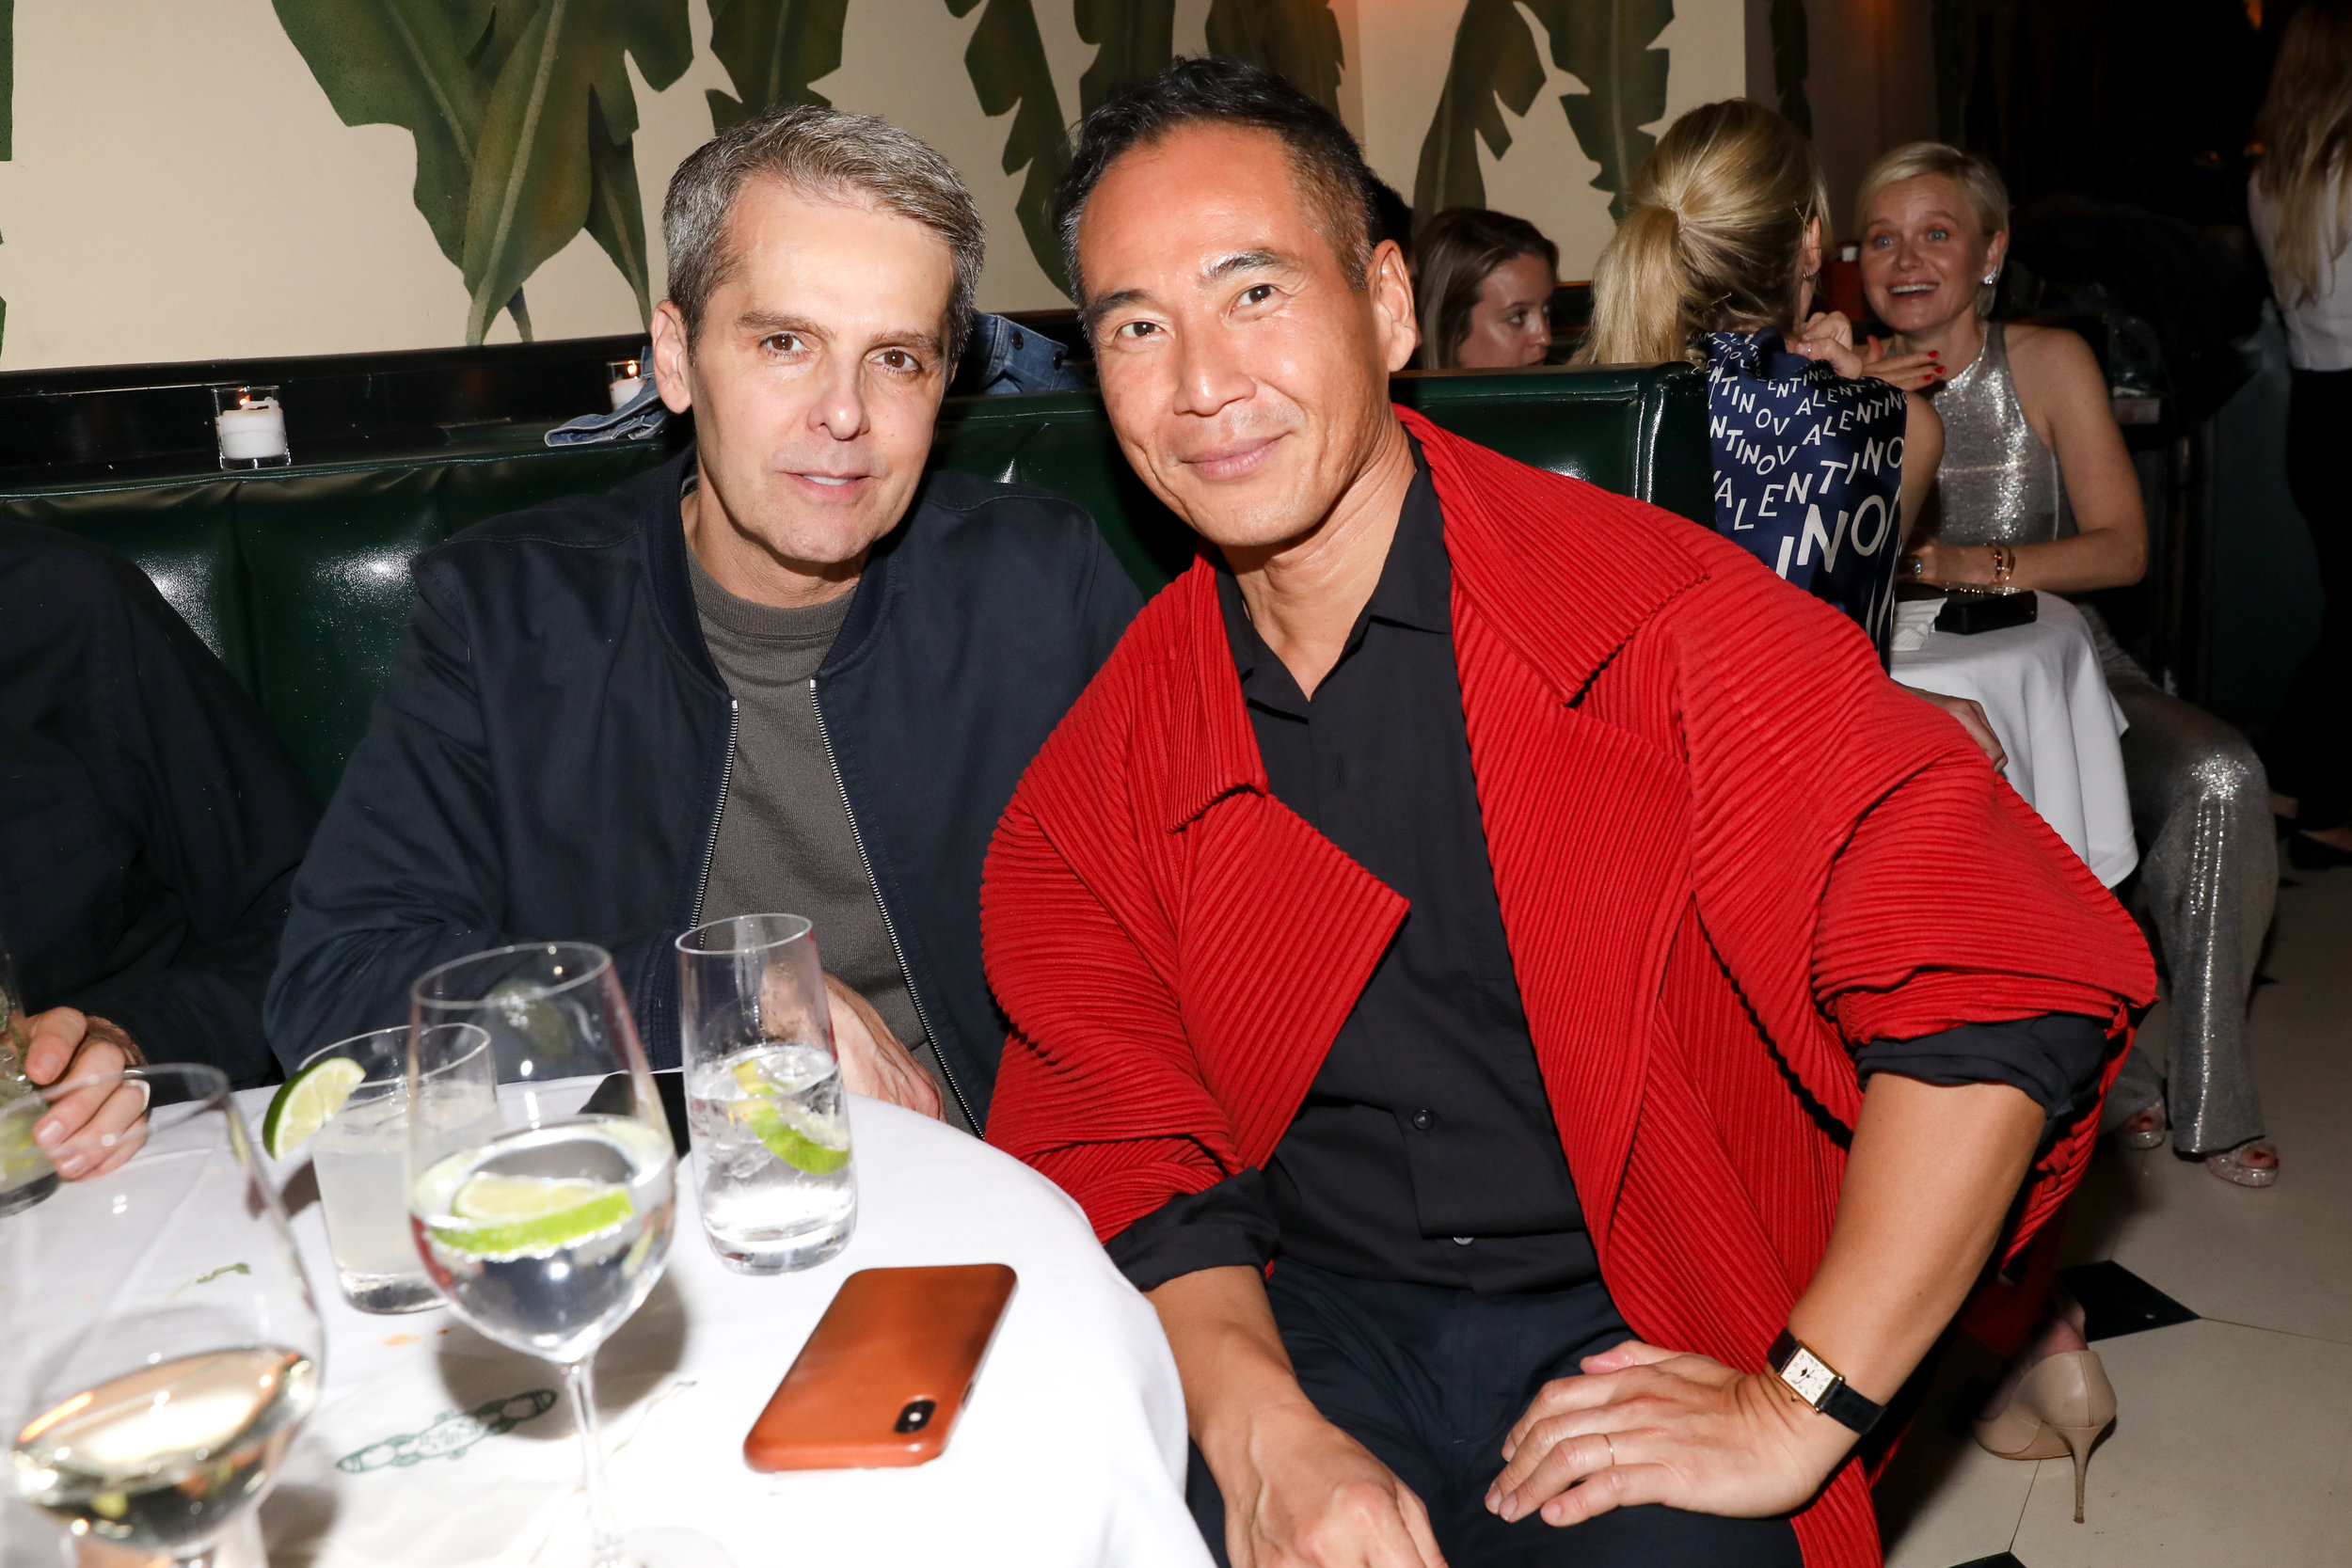 From Left To Right: David Farber and Marcus Theo attend The Opening of The Dr. Barbara Sturm Zero Bond Boutique & Spa on Thursday, May 2, 2019. Photographed by Neil Rasmus/BFA.